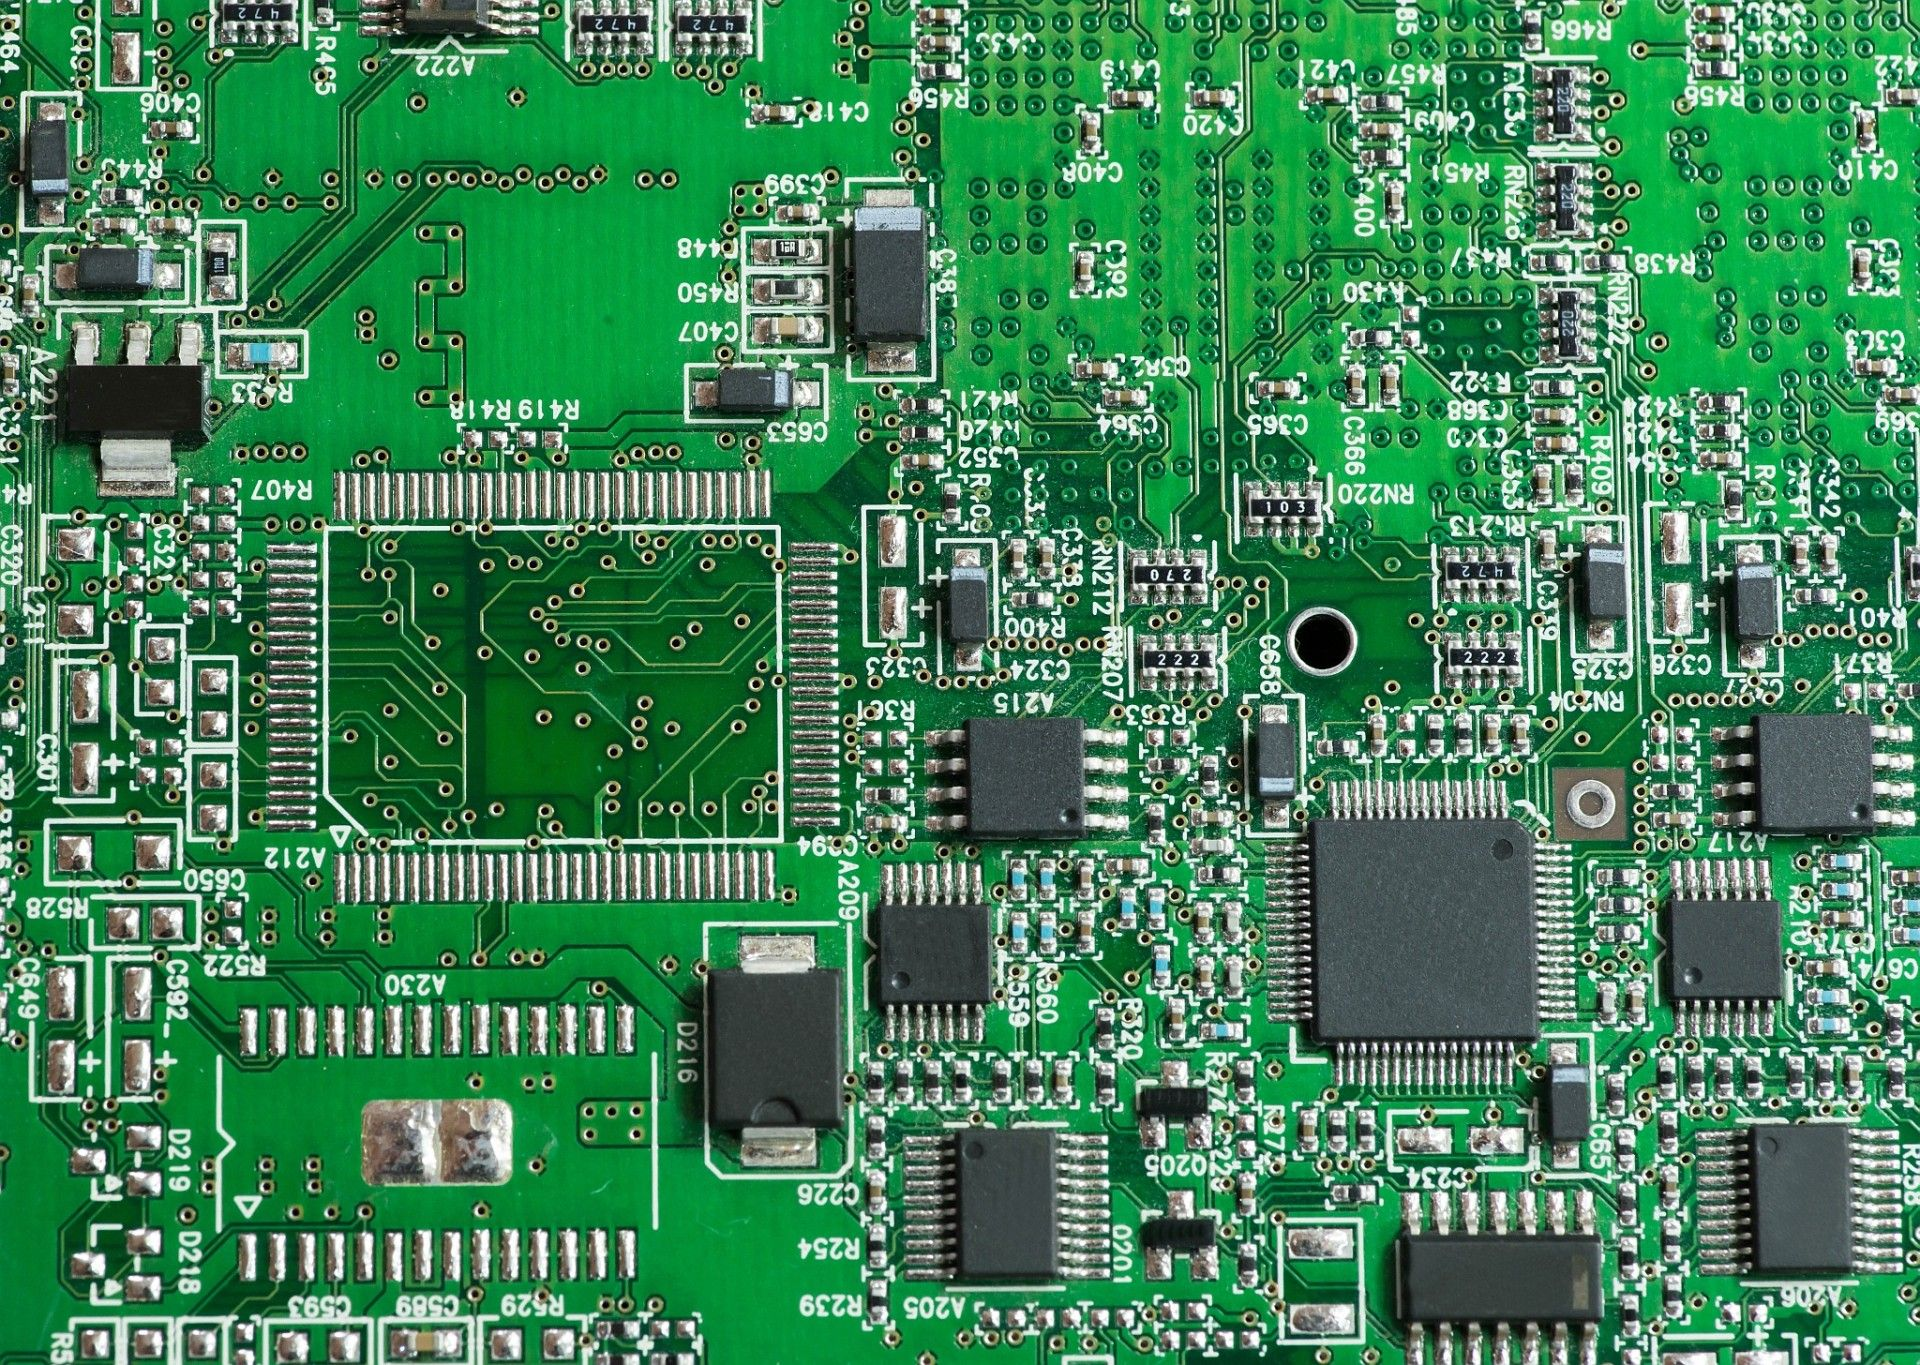 7 Fatal Mistakes to Avoid on Your PCB Design | Electronics projects ...